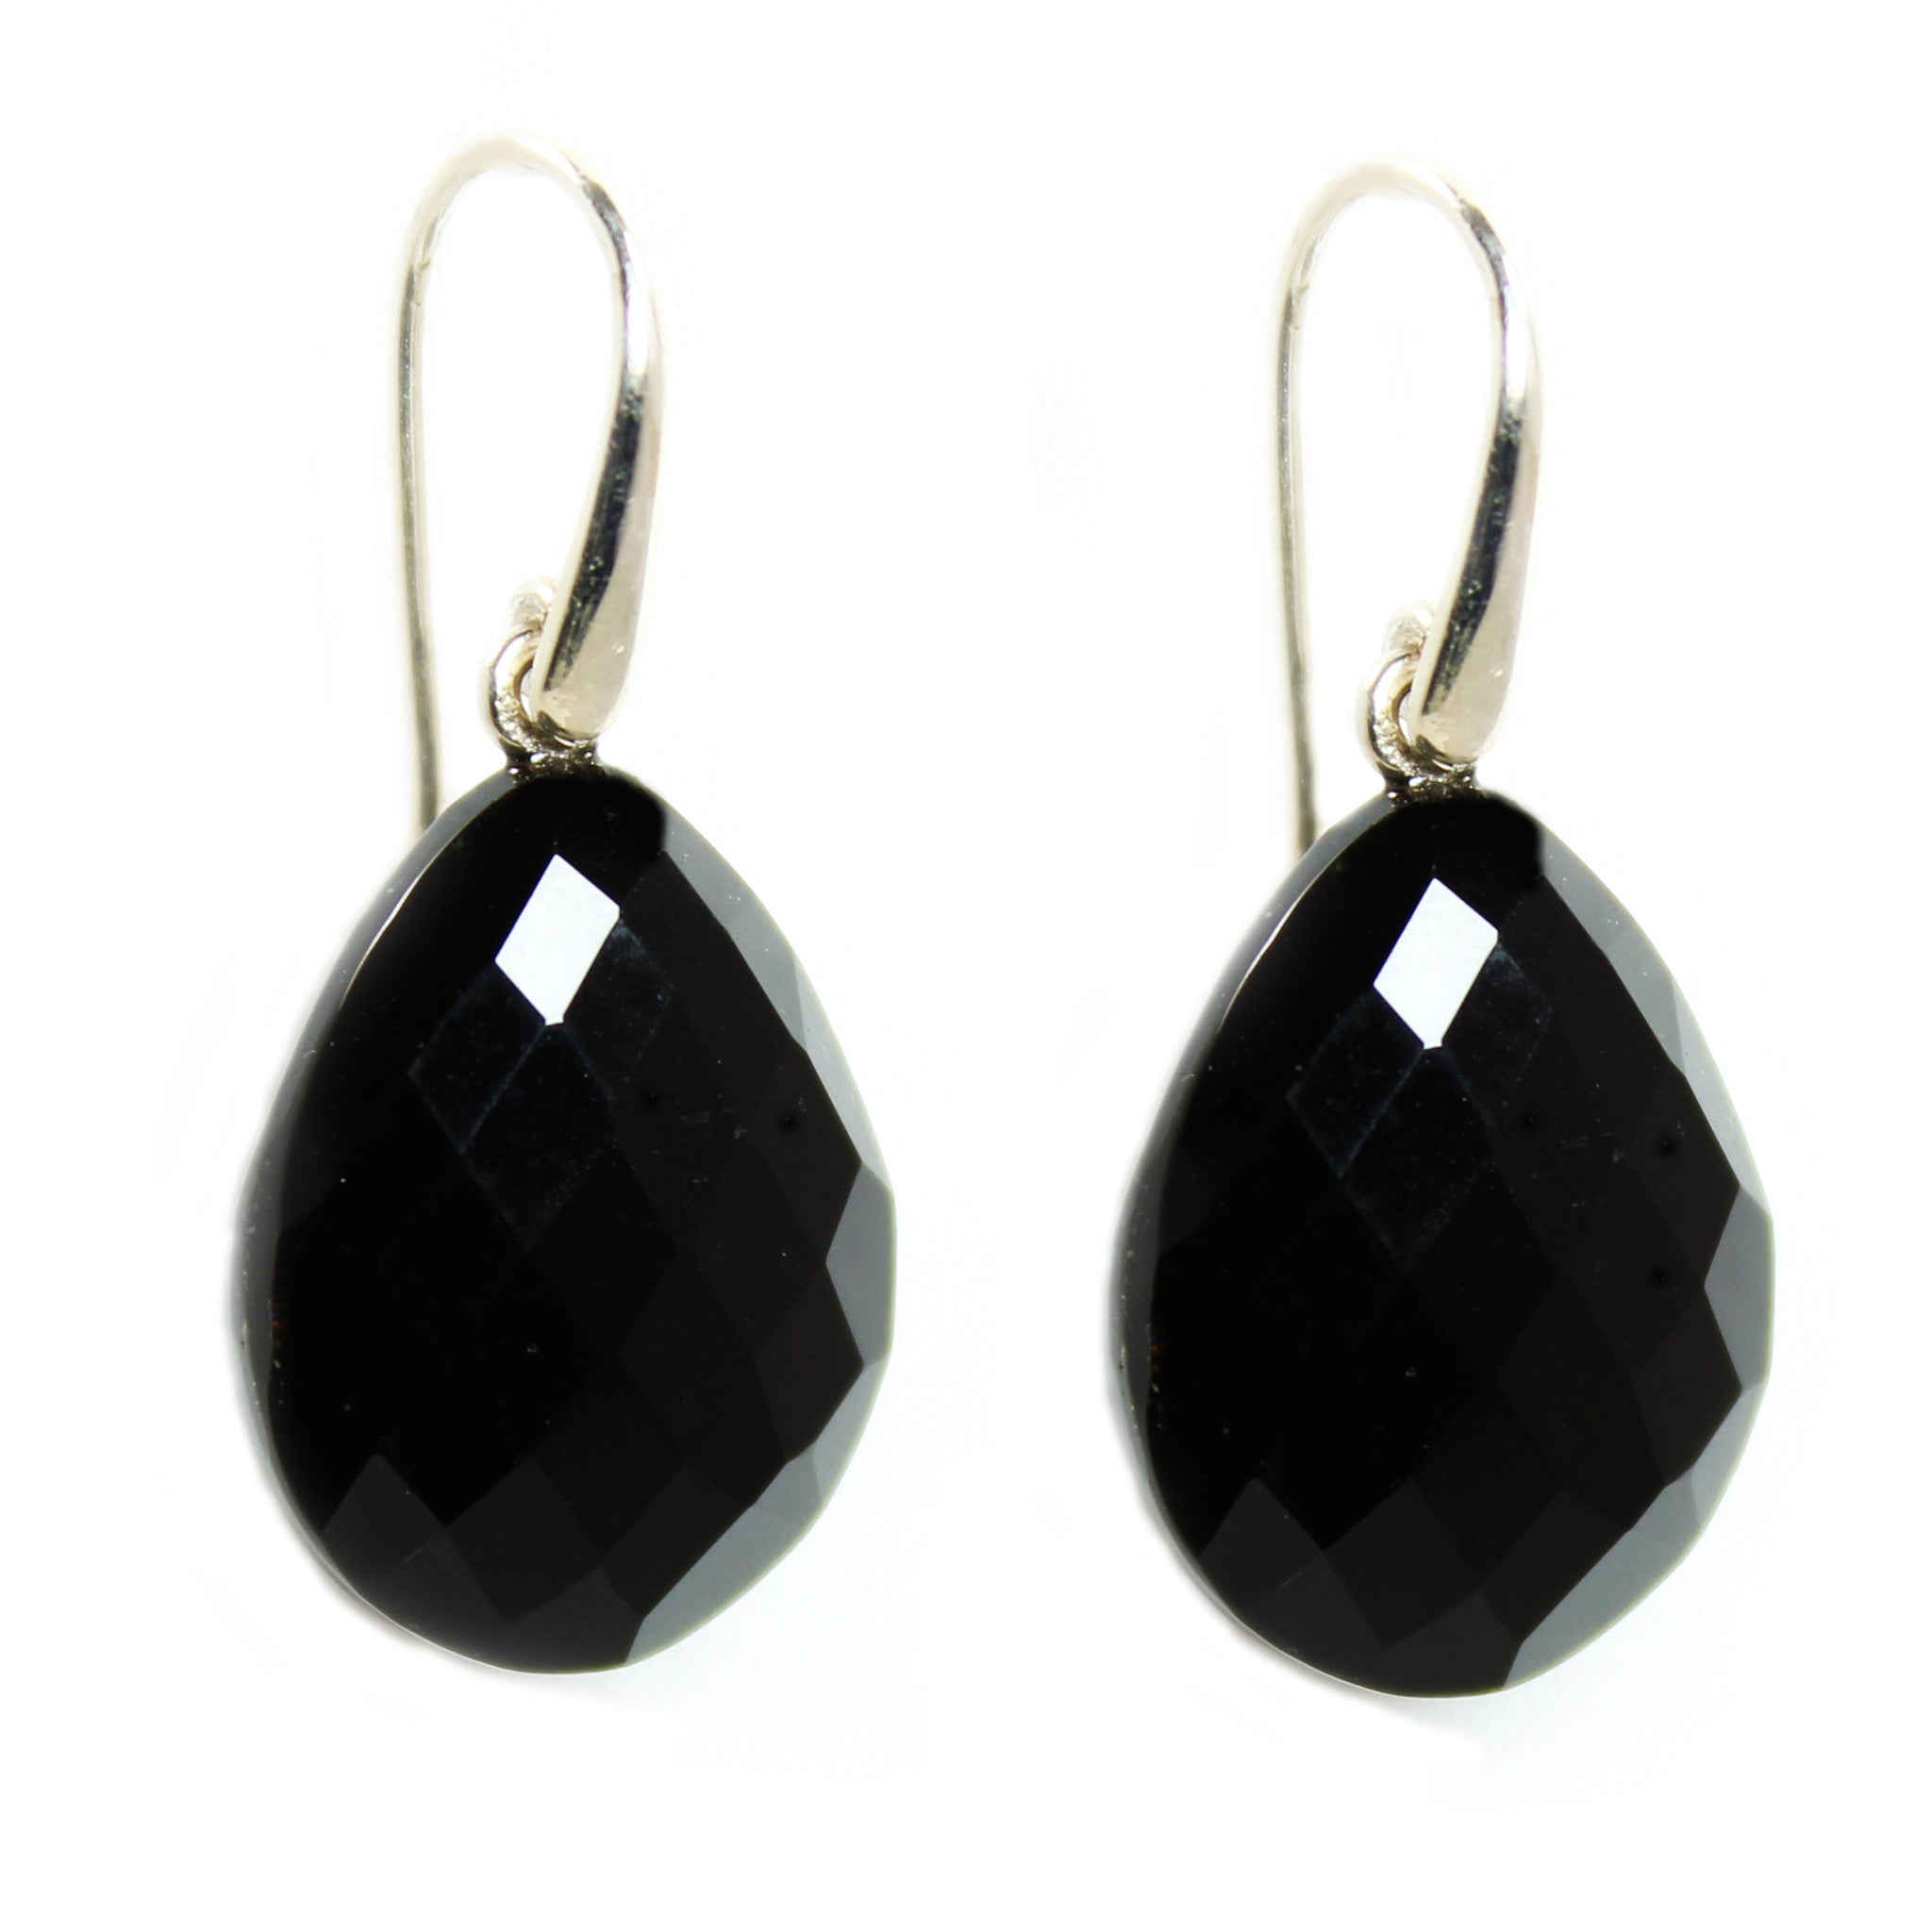 dm shape black silver pear blck cage slvr drop two earrings drp errngs di modolo cg onyx ox sterling pr